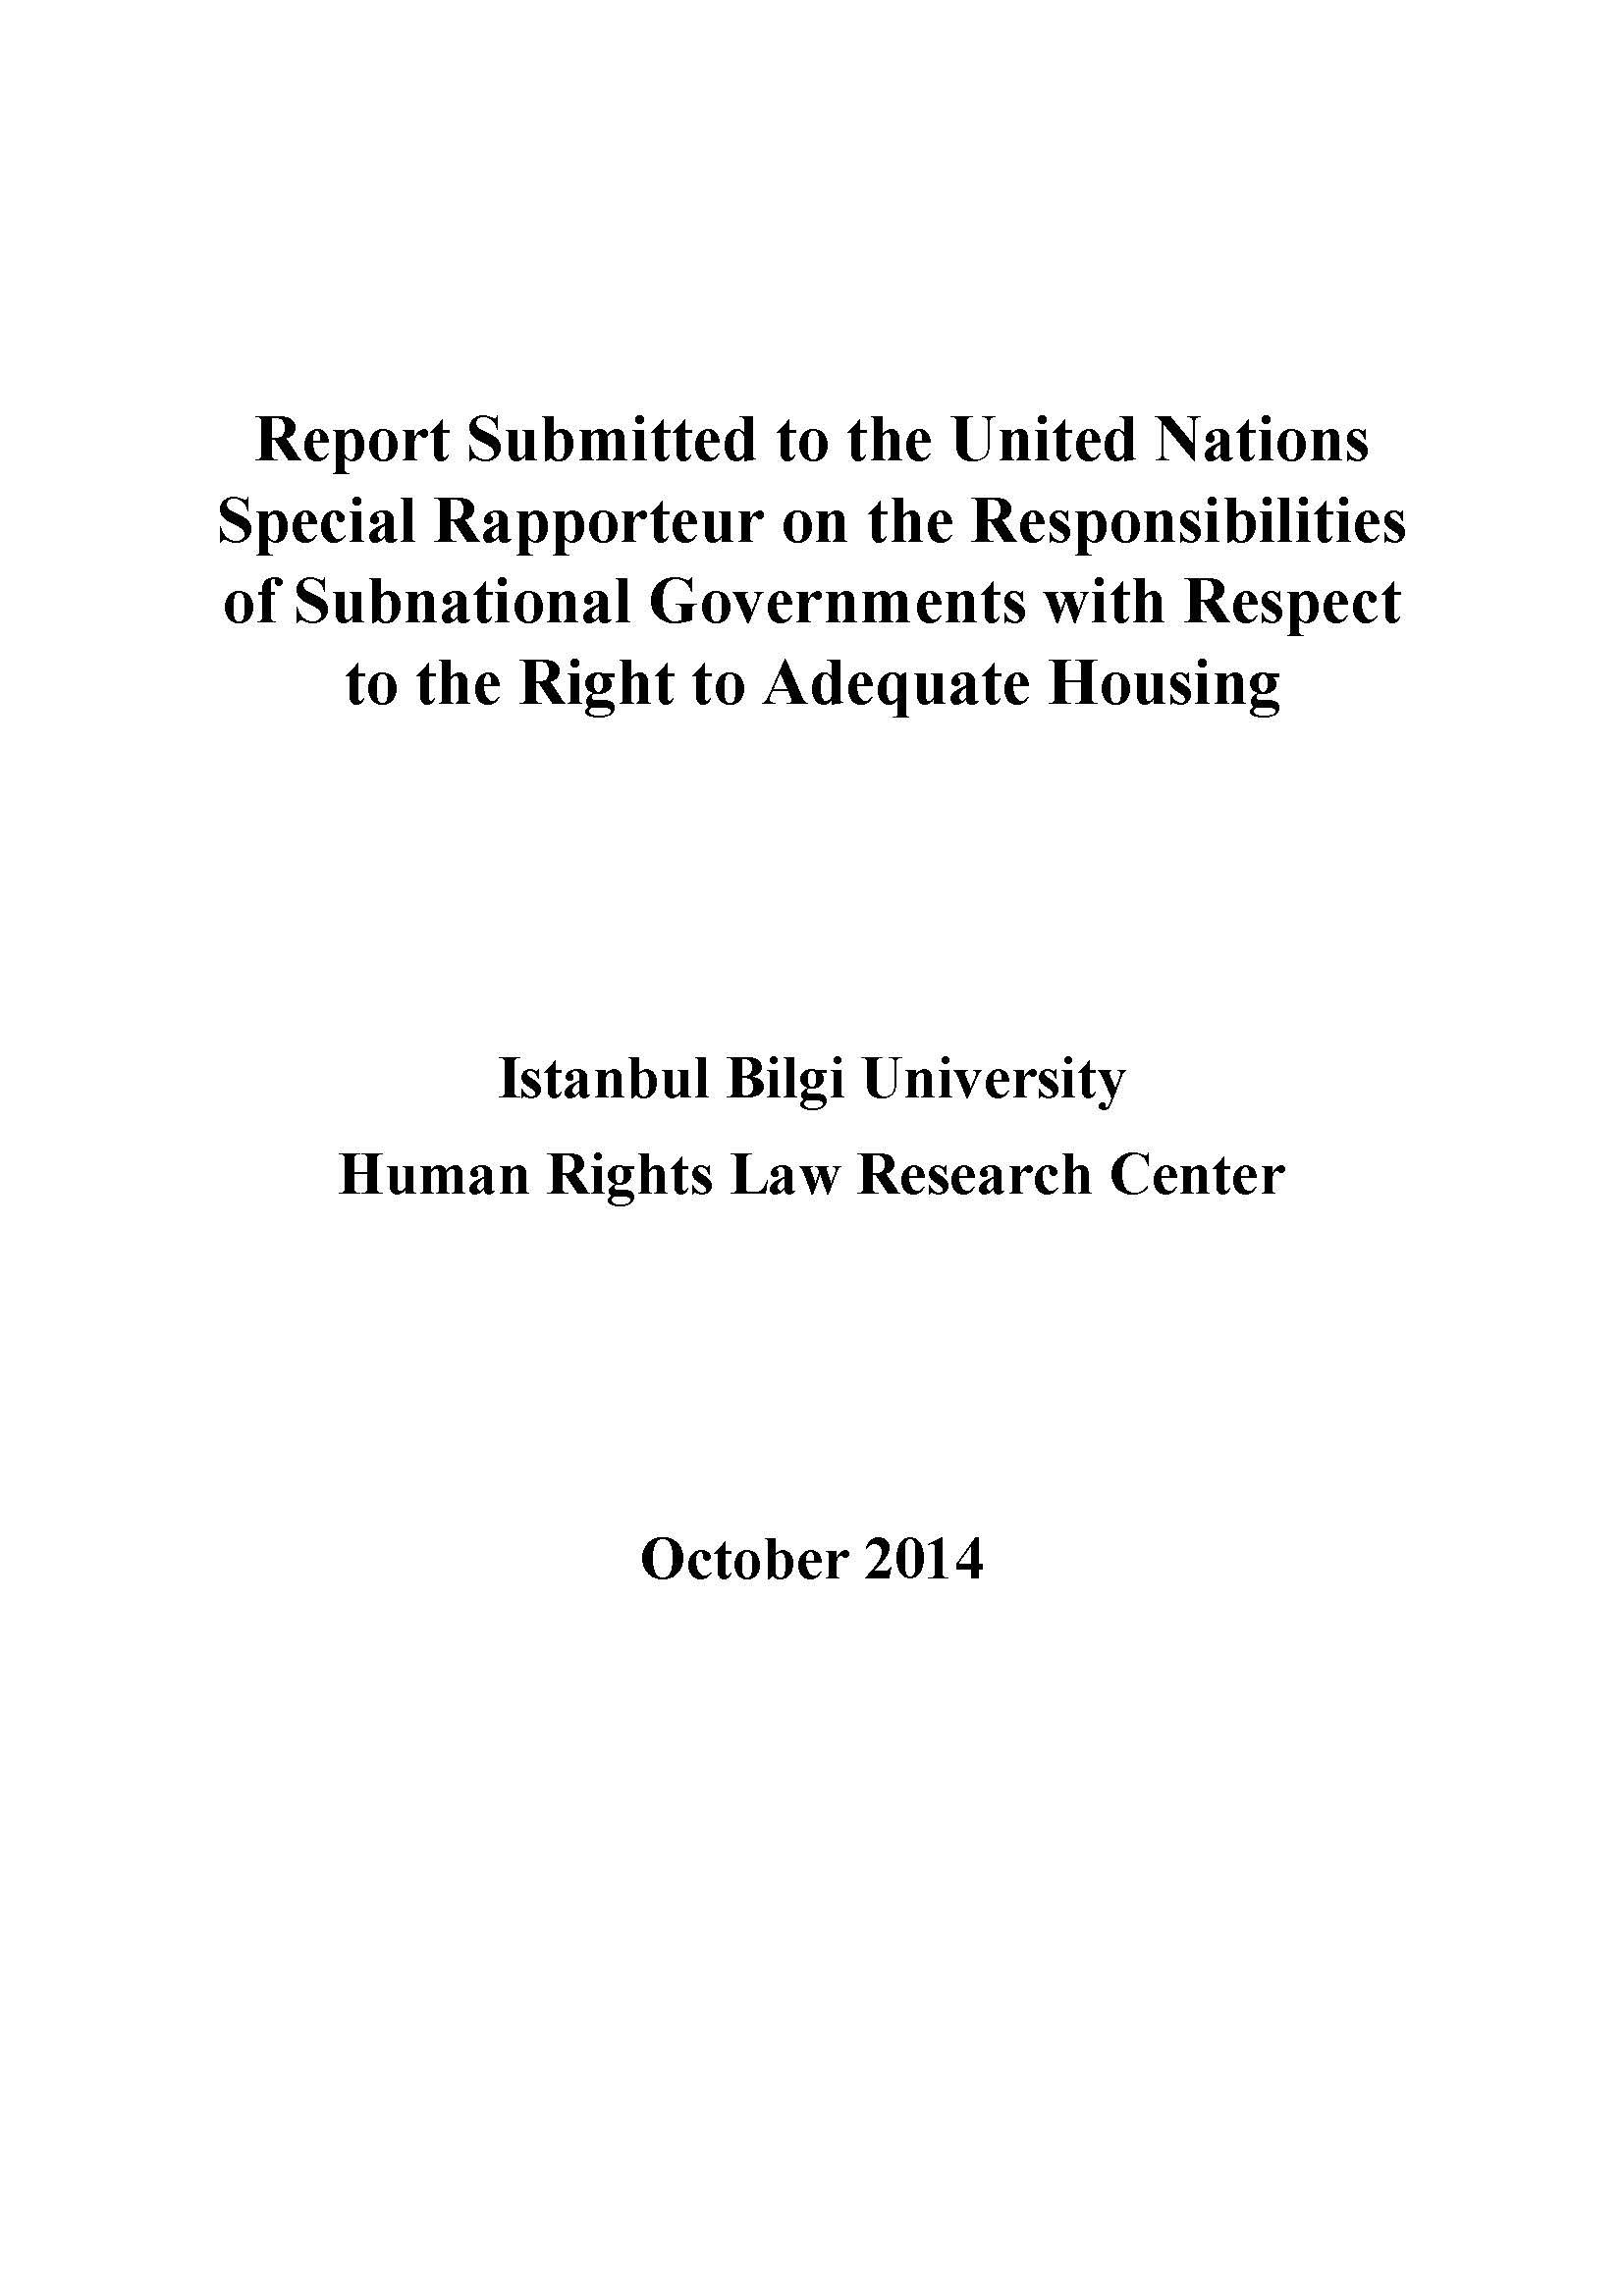 Responsibilities of Subnational Governments with Respect to the Right to Adequate Housing